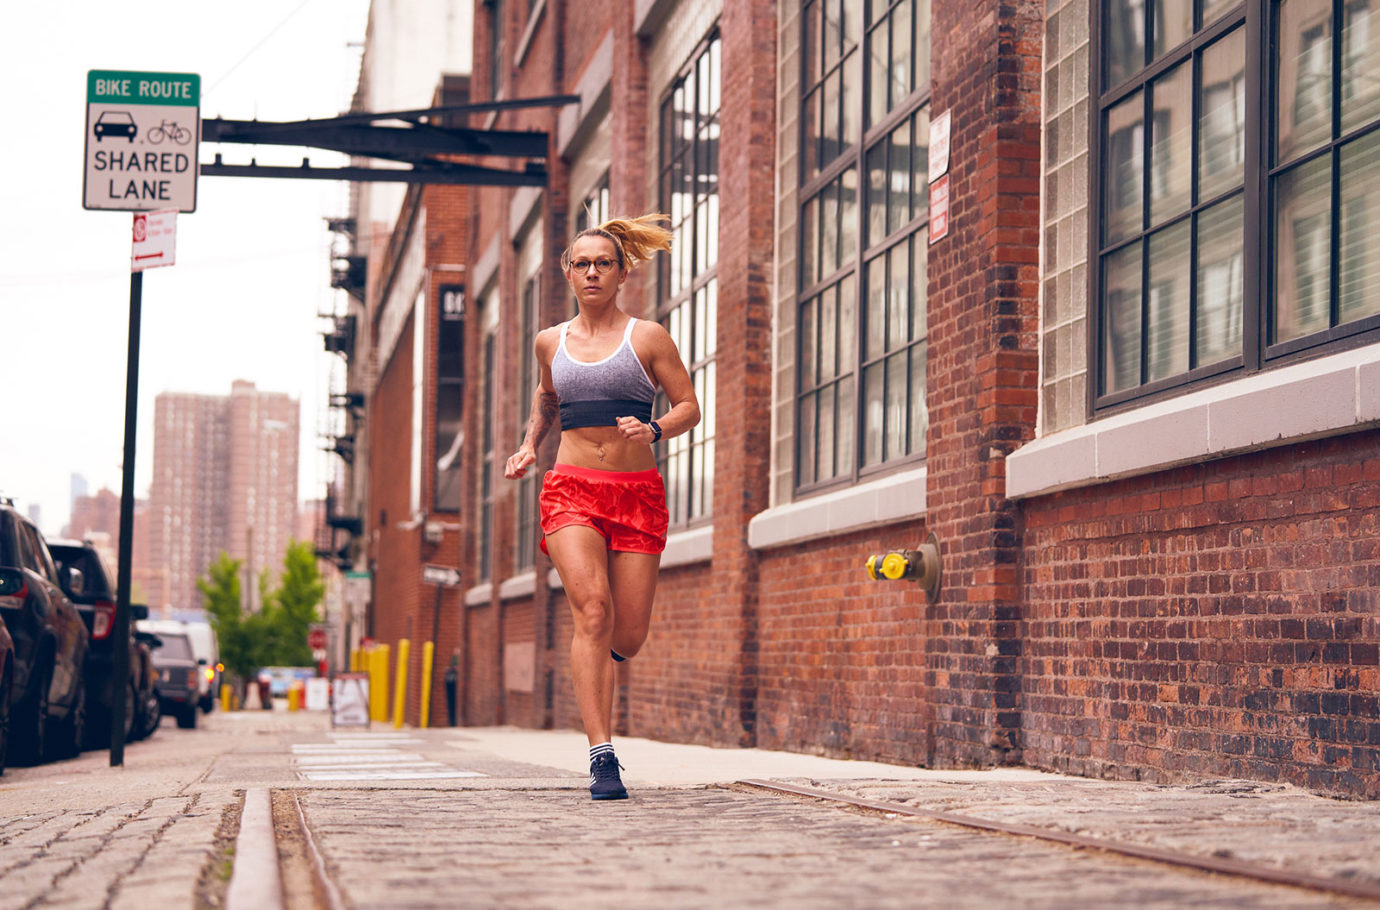 How to get rid of a runner's knee